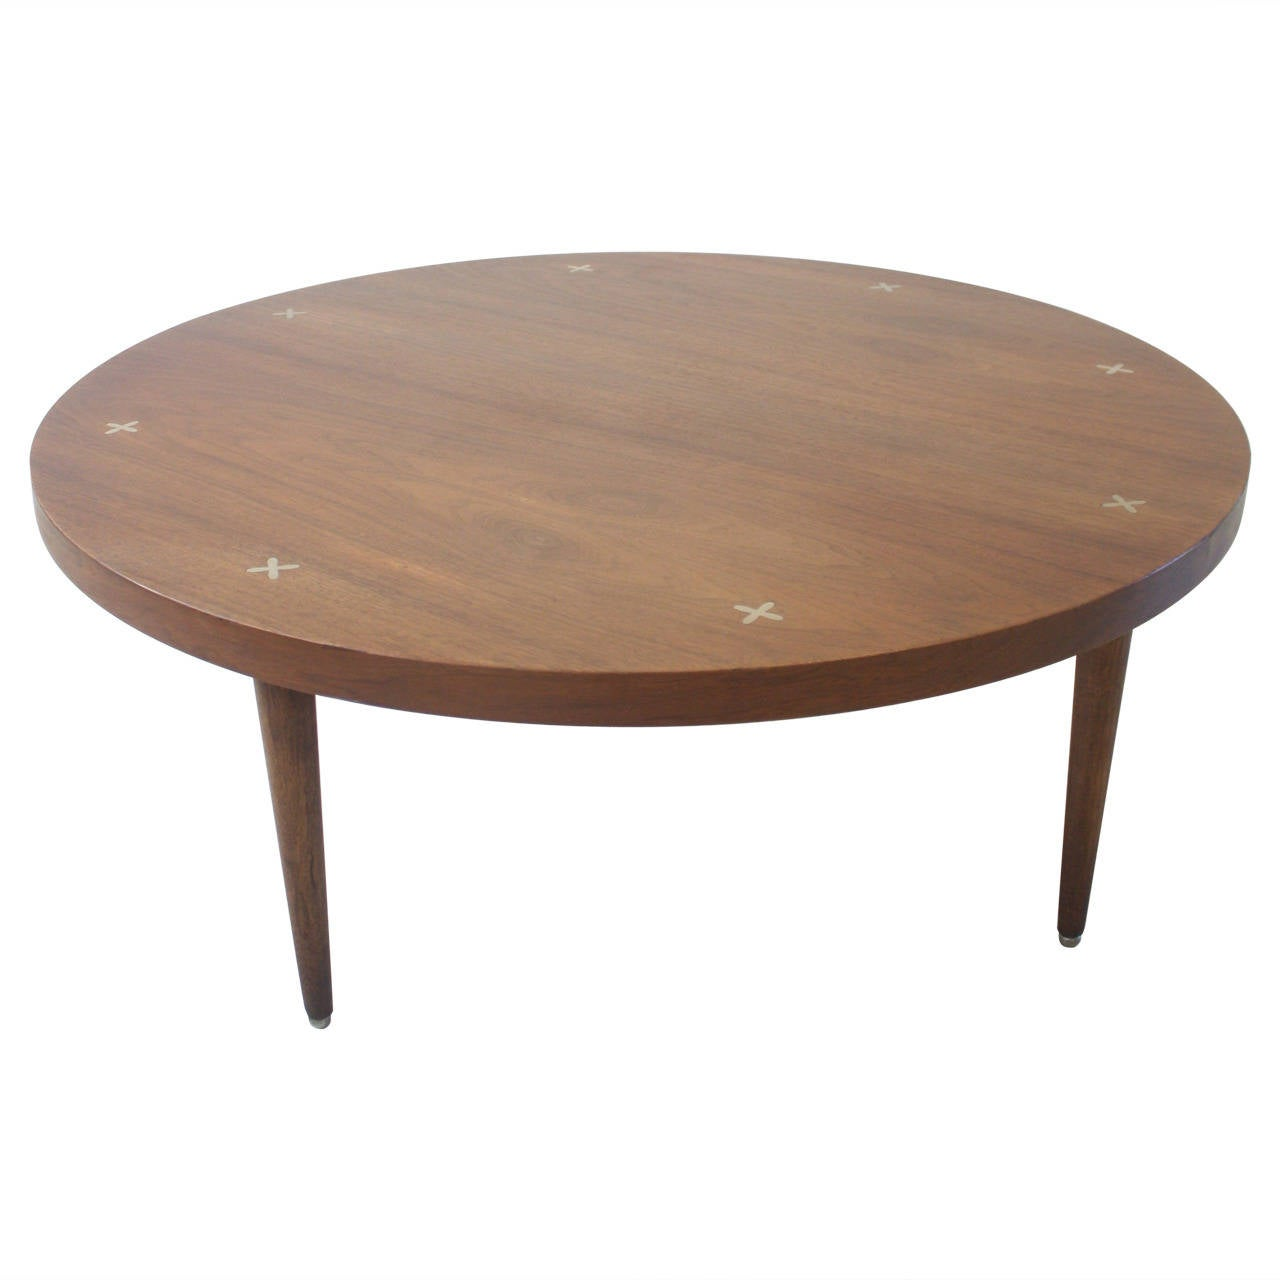 Vintage Walnut Coffee Table By American Of Martinsville For Sale At 1stdibs